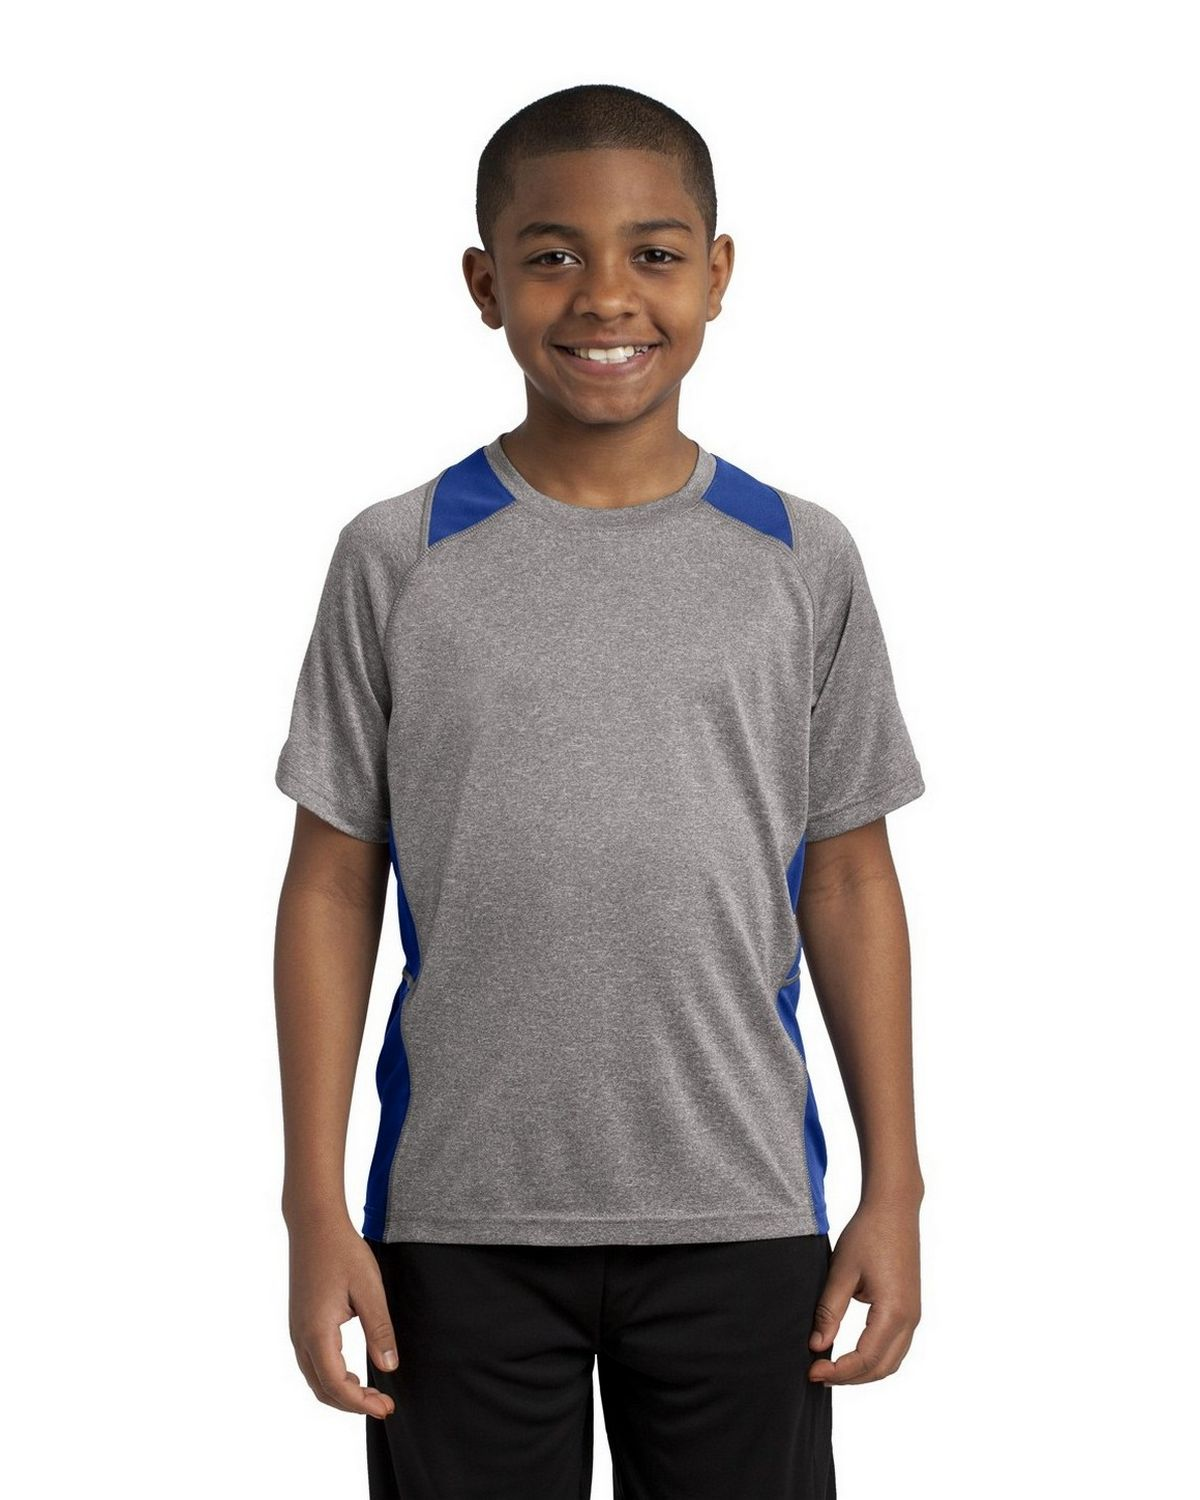 Sport-Tek YST361 Youth Heather Colorblock Contender Tee - Vintage Heather/True Royal - XS YST361